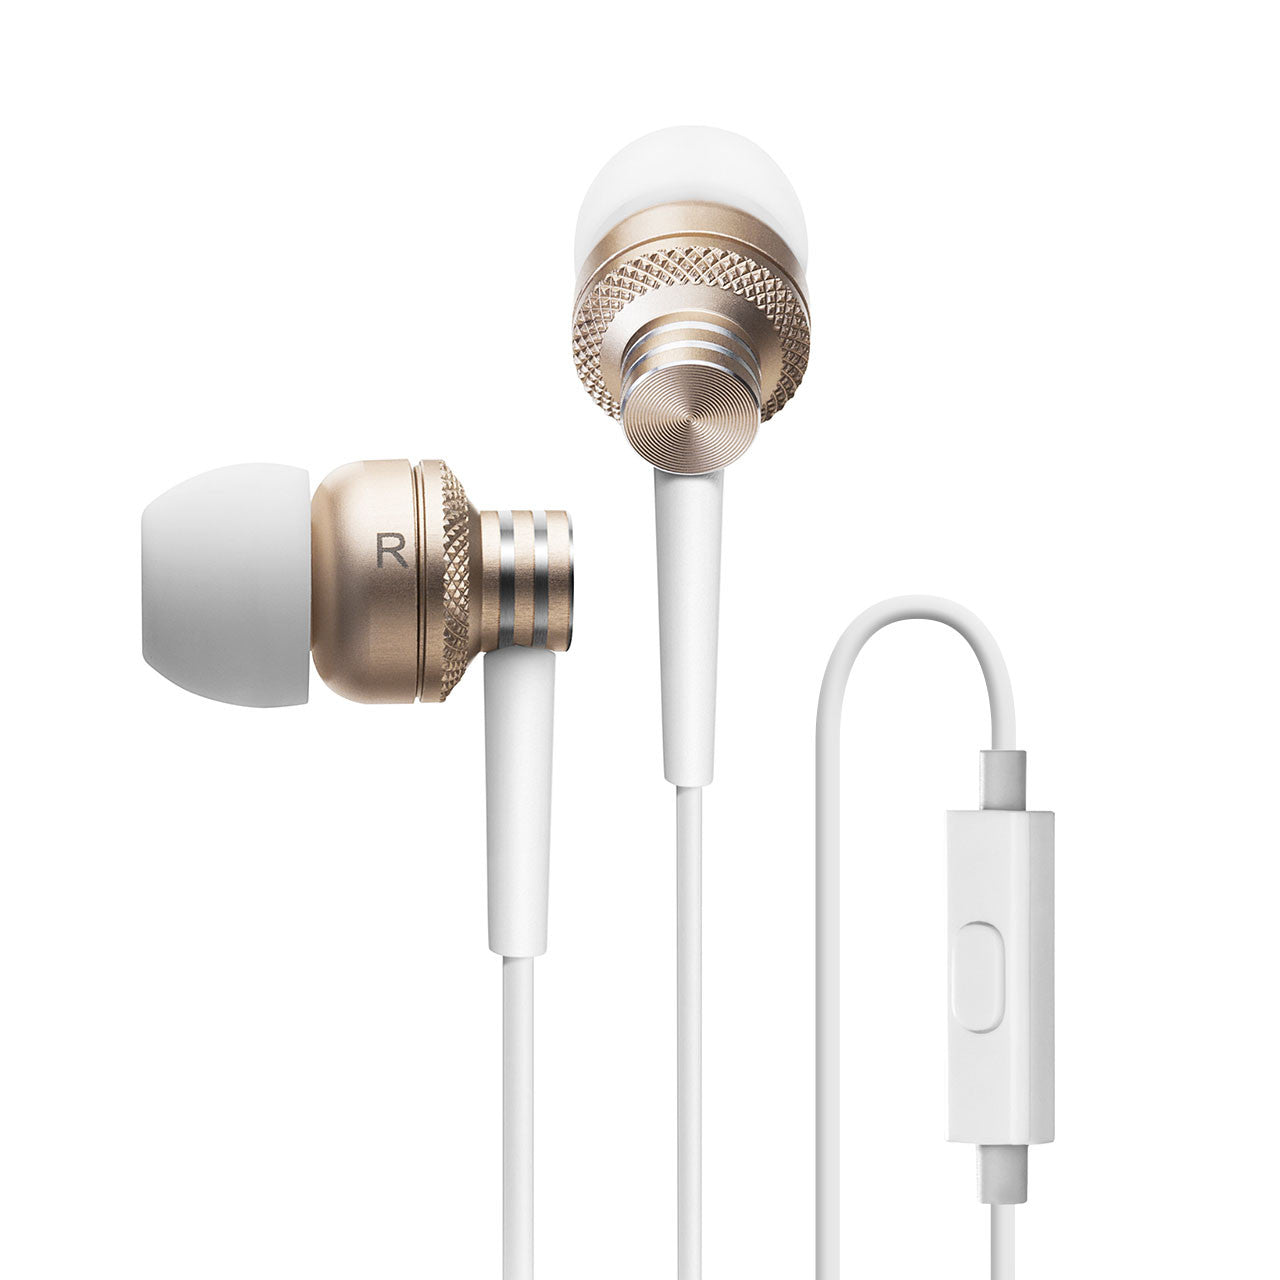 P270 In-ear Headset